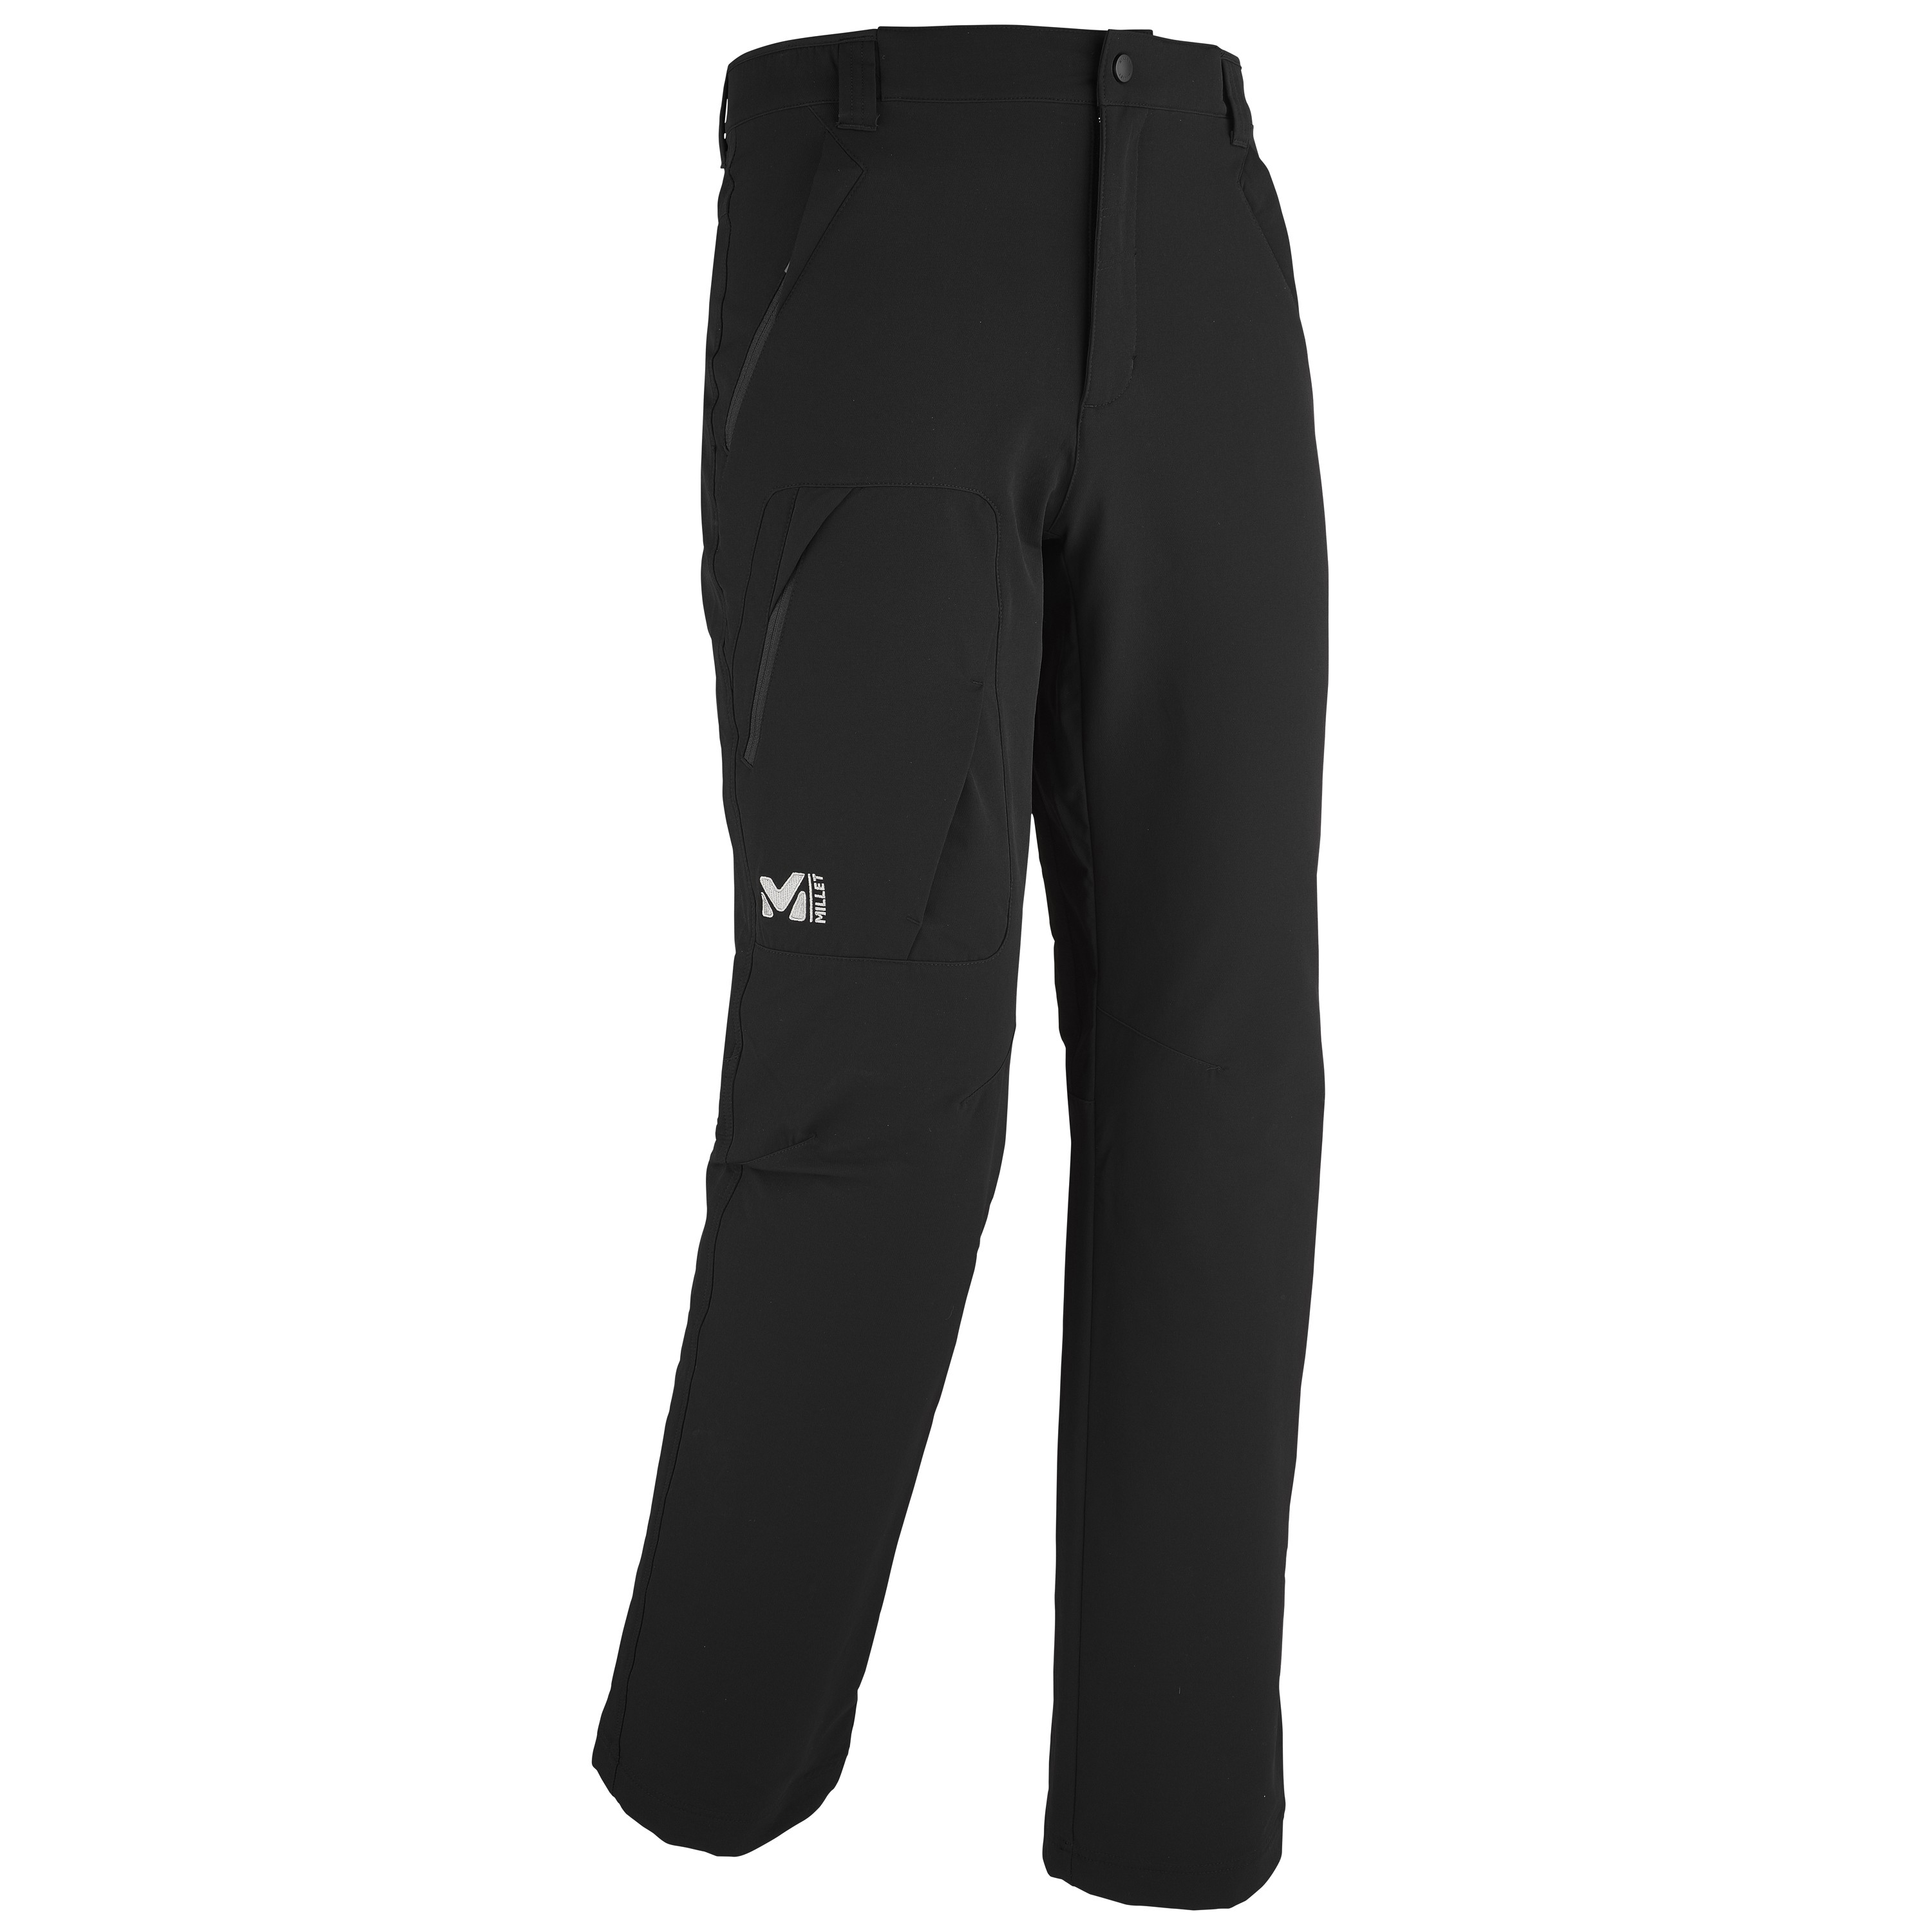 ALL OUTDOOR II LG PANT